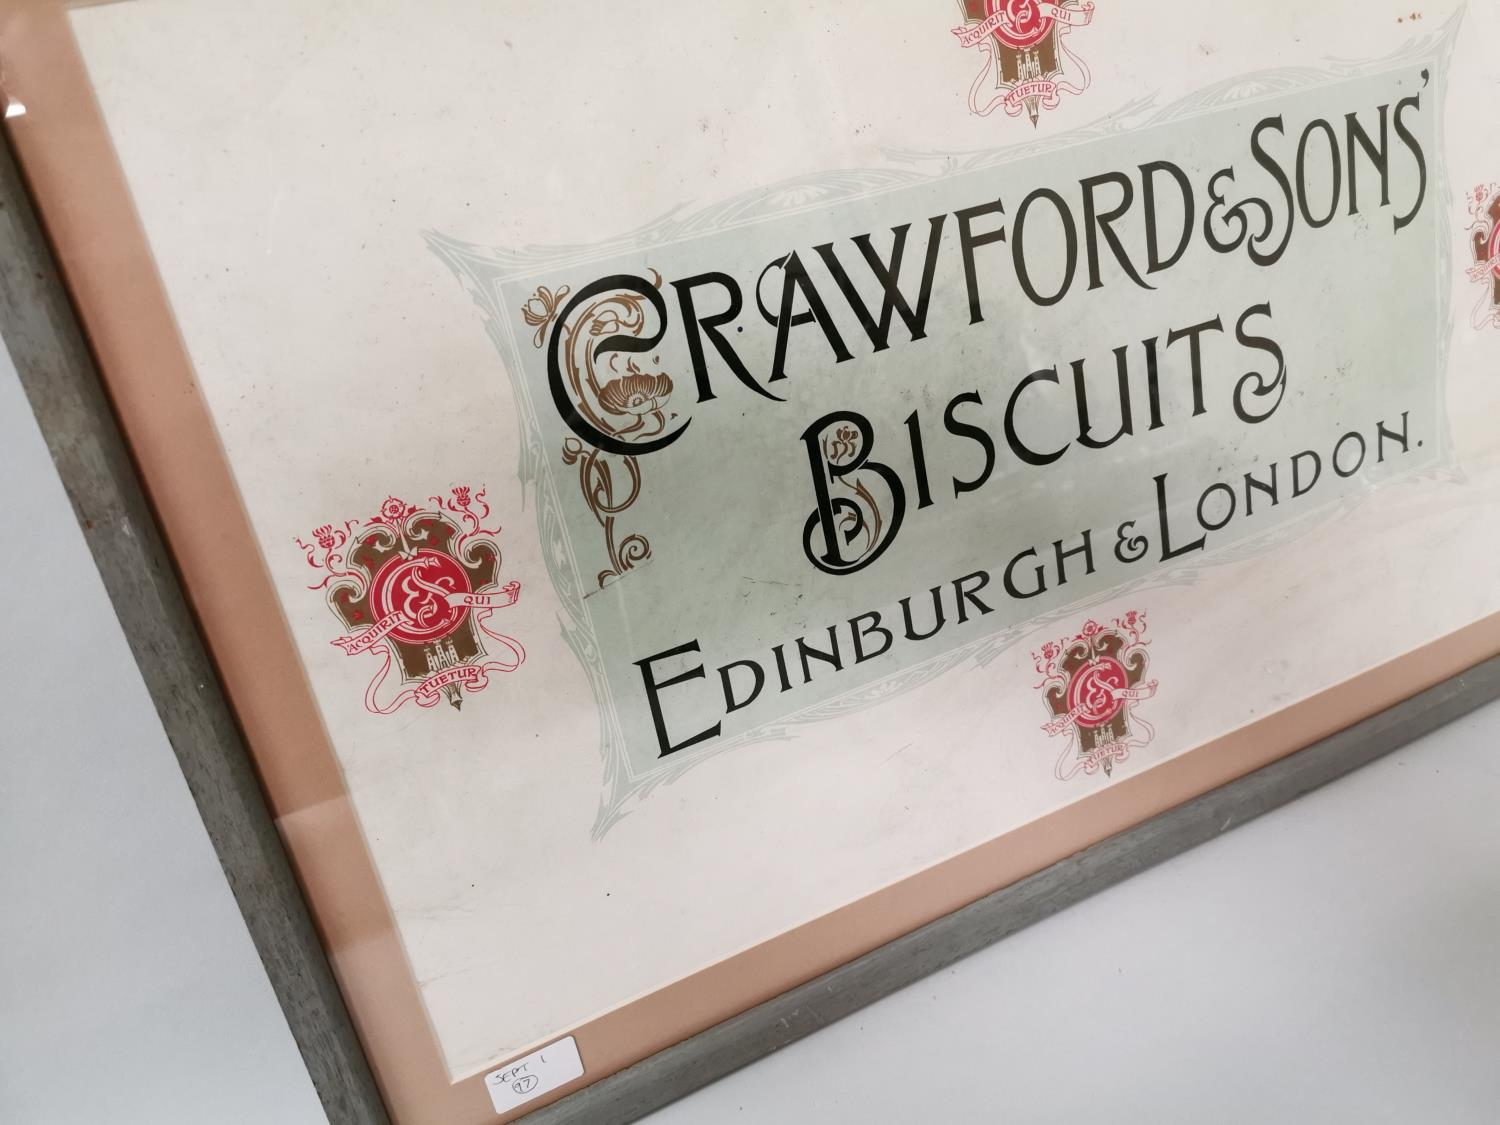 Crawford's & Sons Biscuits framed advertisement. - Image 4 of 4